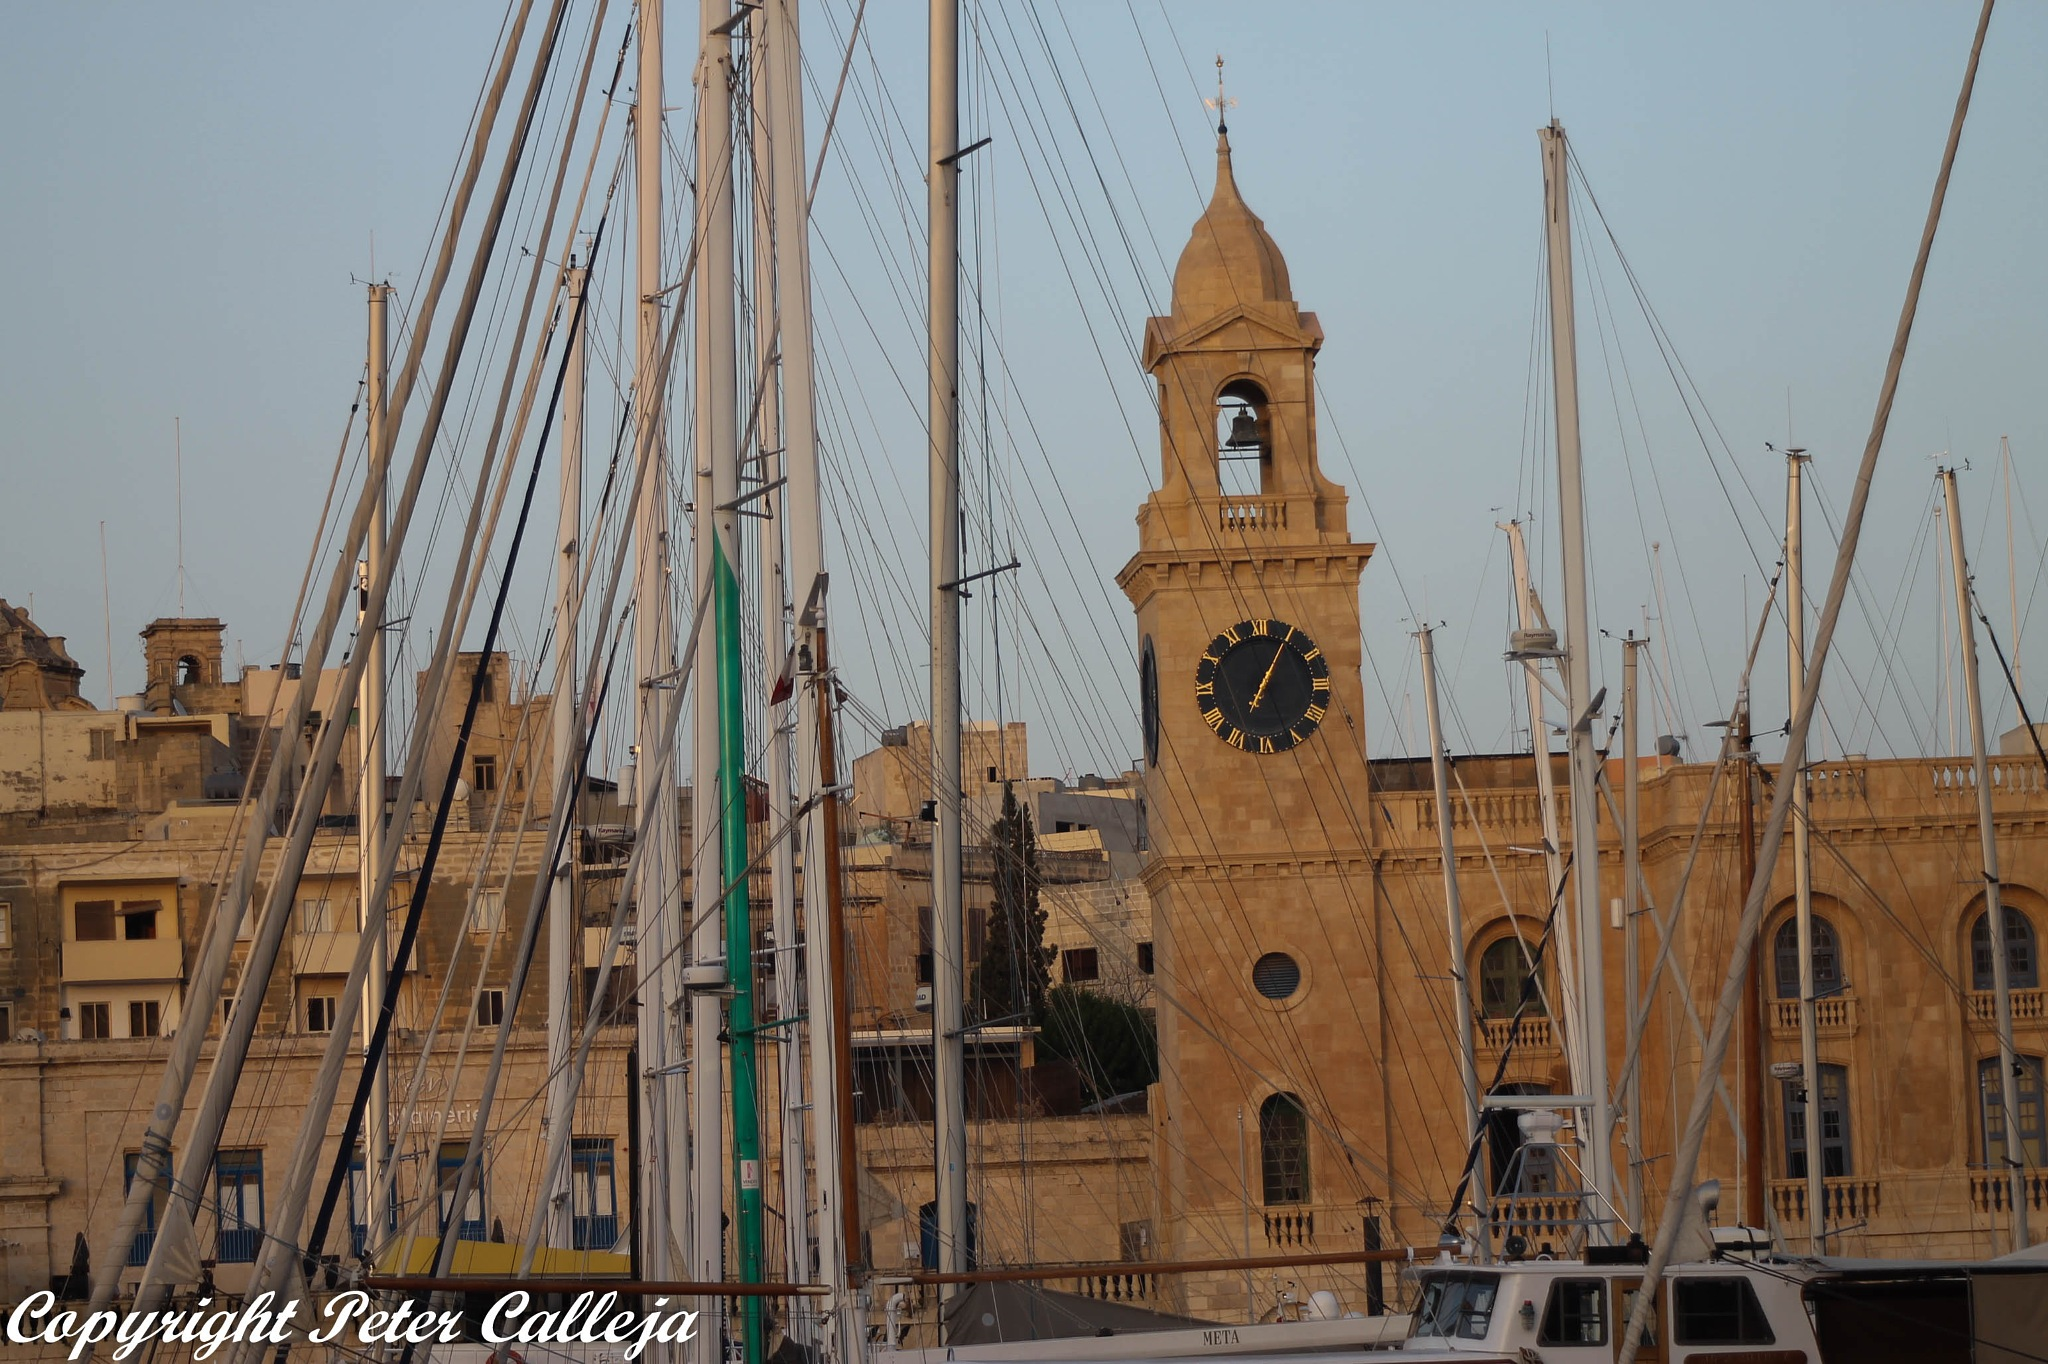 Masts & Towers by Peter Calleja